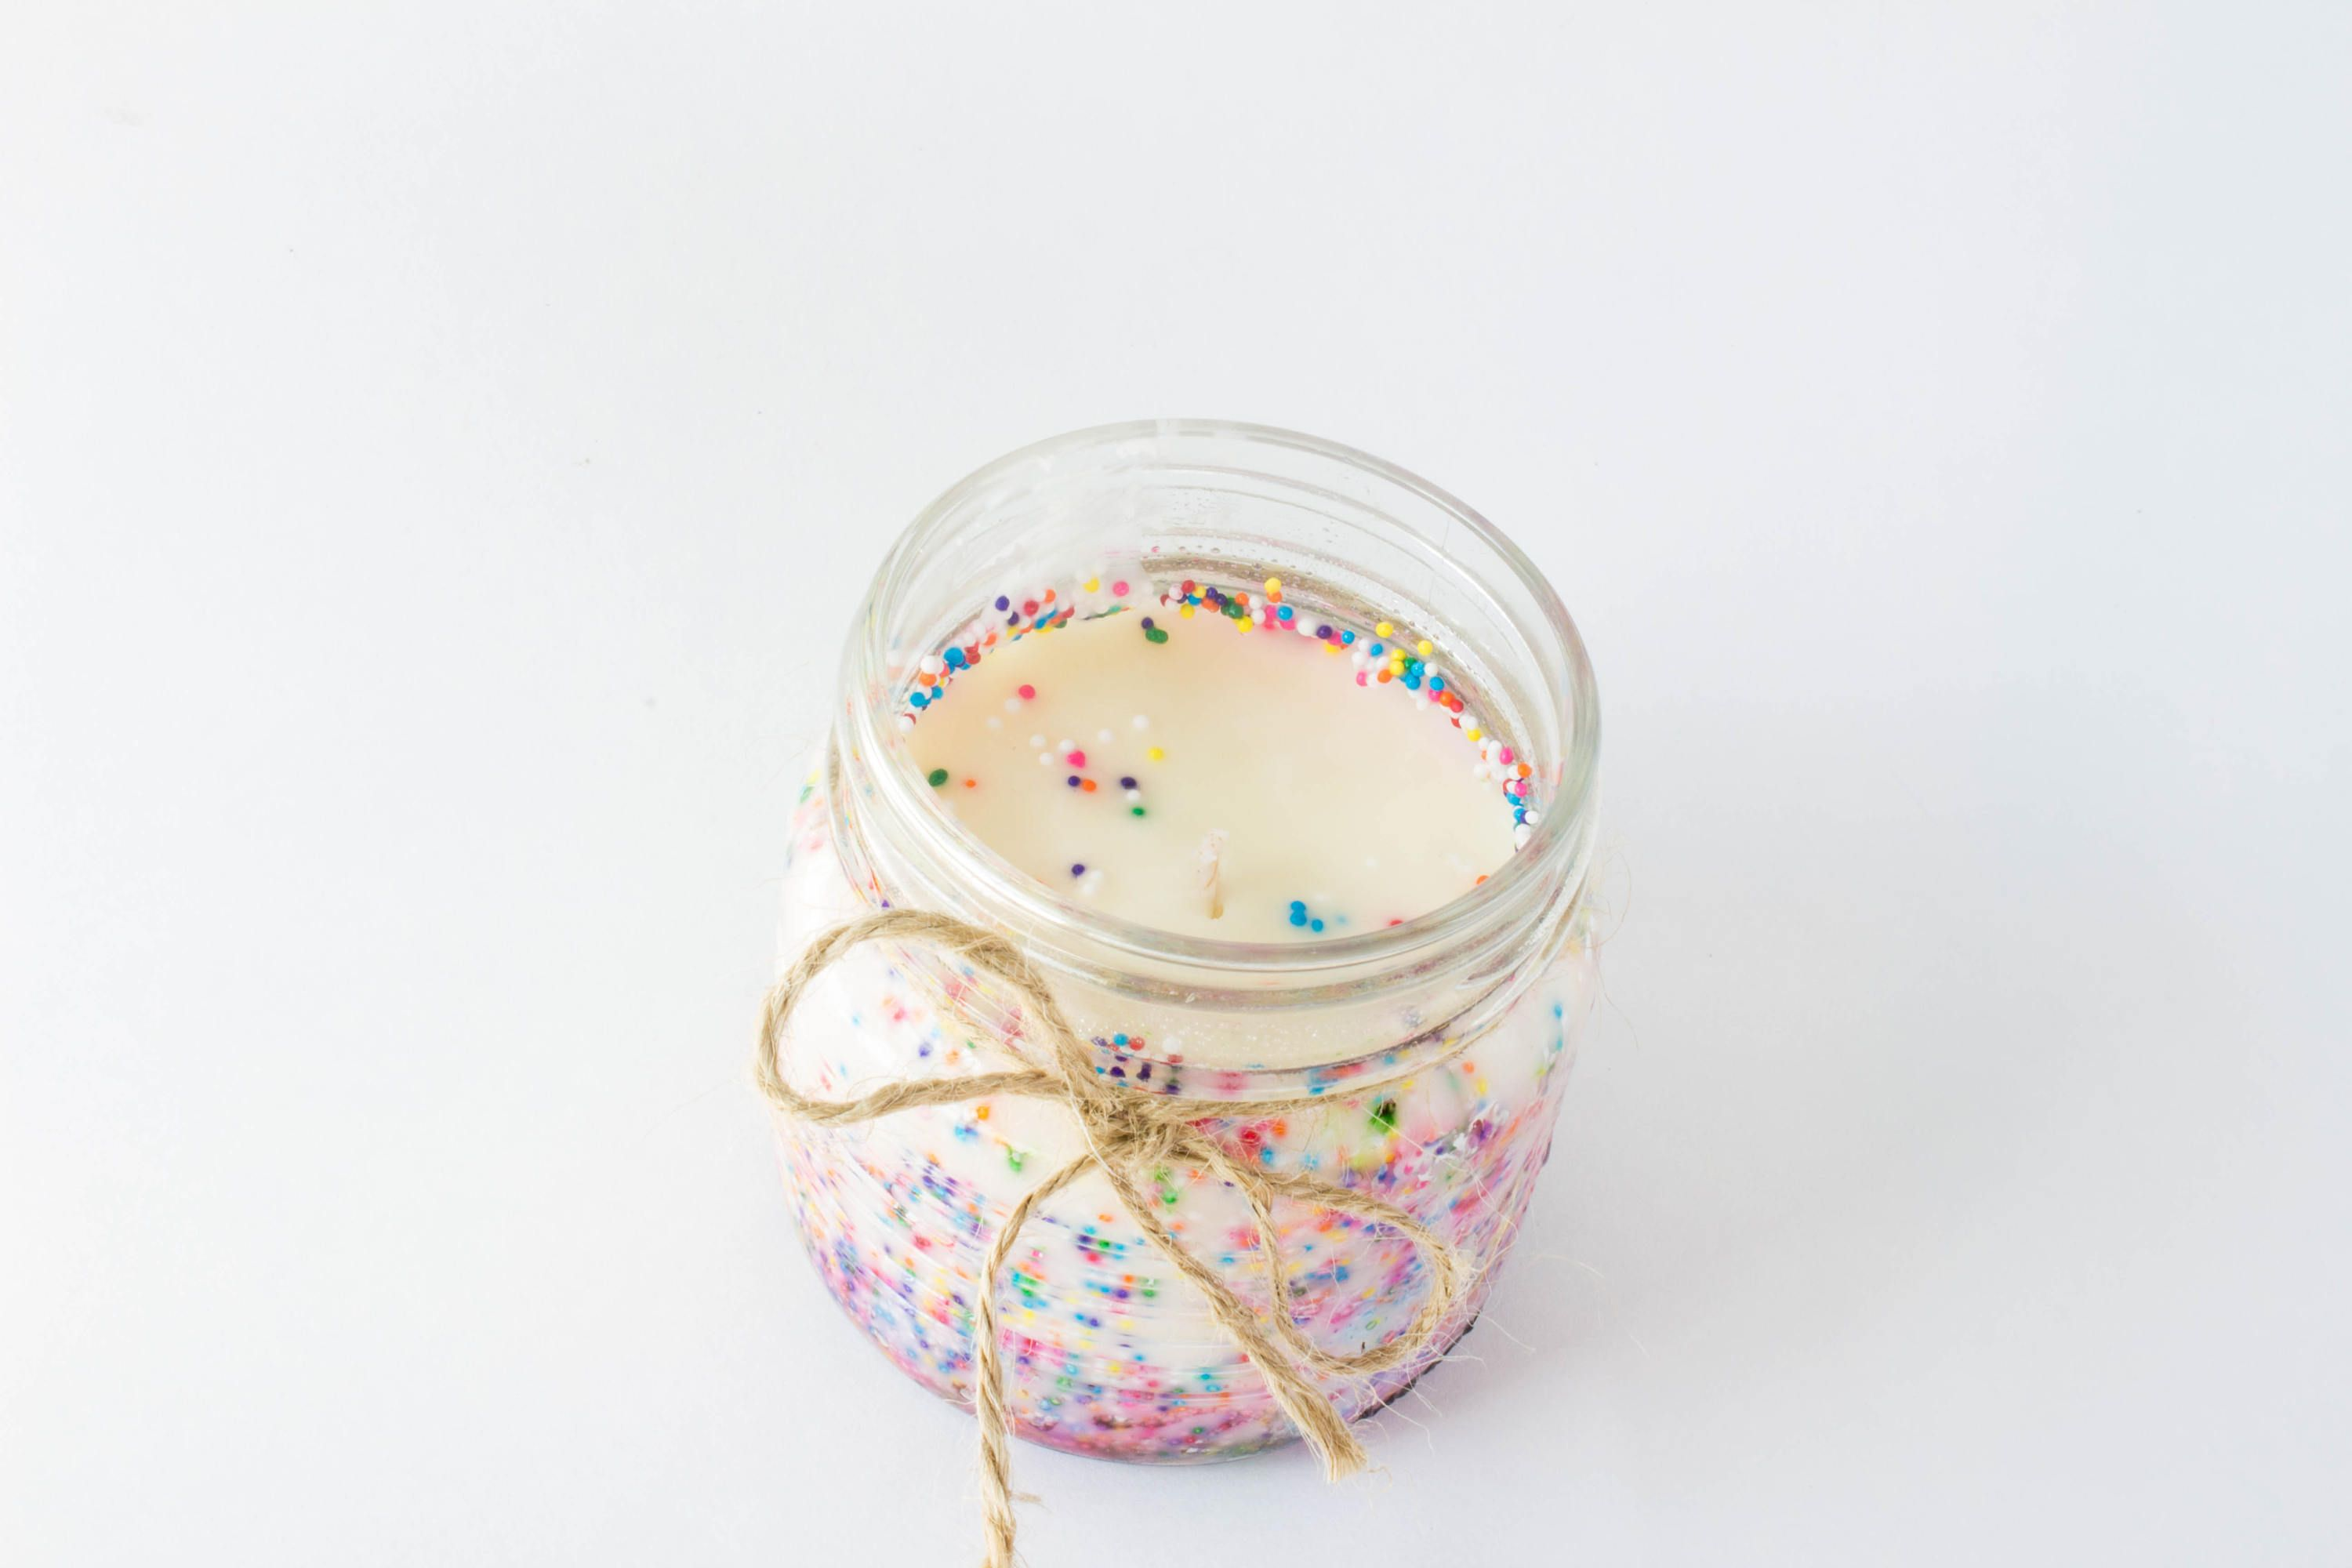 Swell Birthday Cake Scented Candle Cake Scented Candle Mason Jar Funny Birthday Cards Online Unhofree Goldxyz